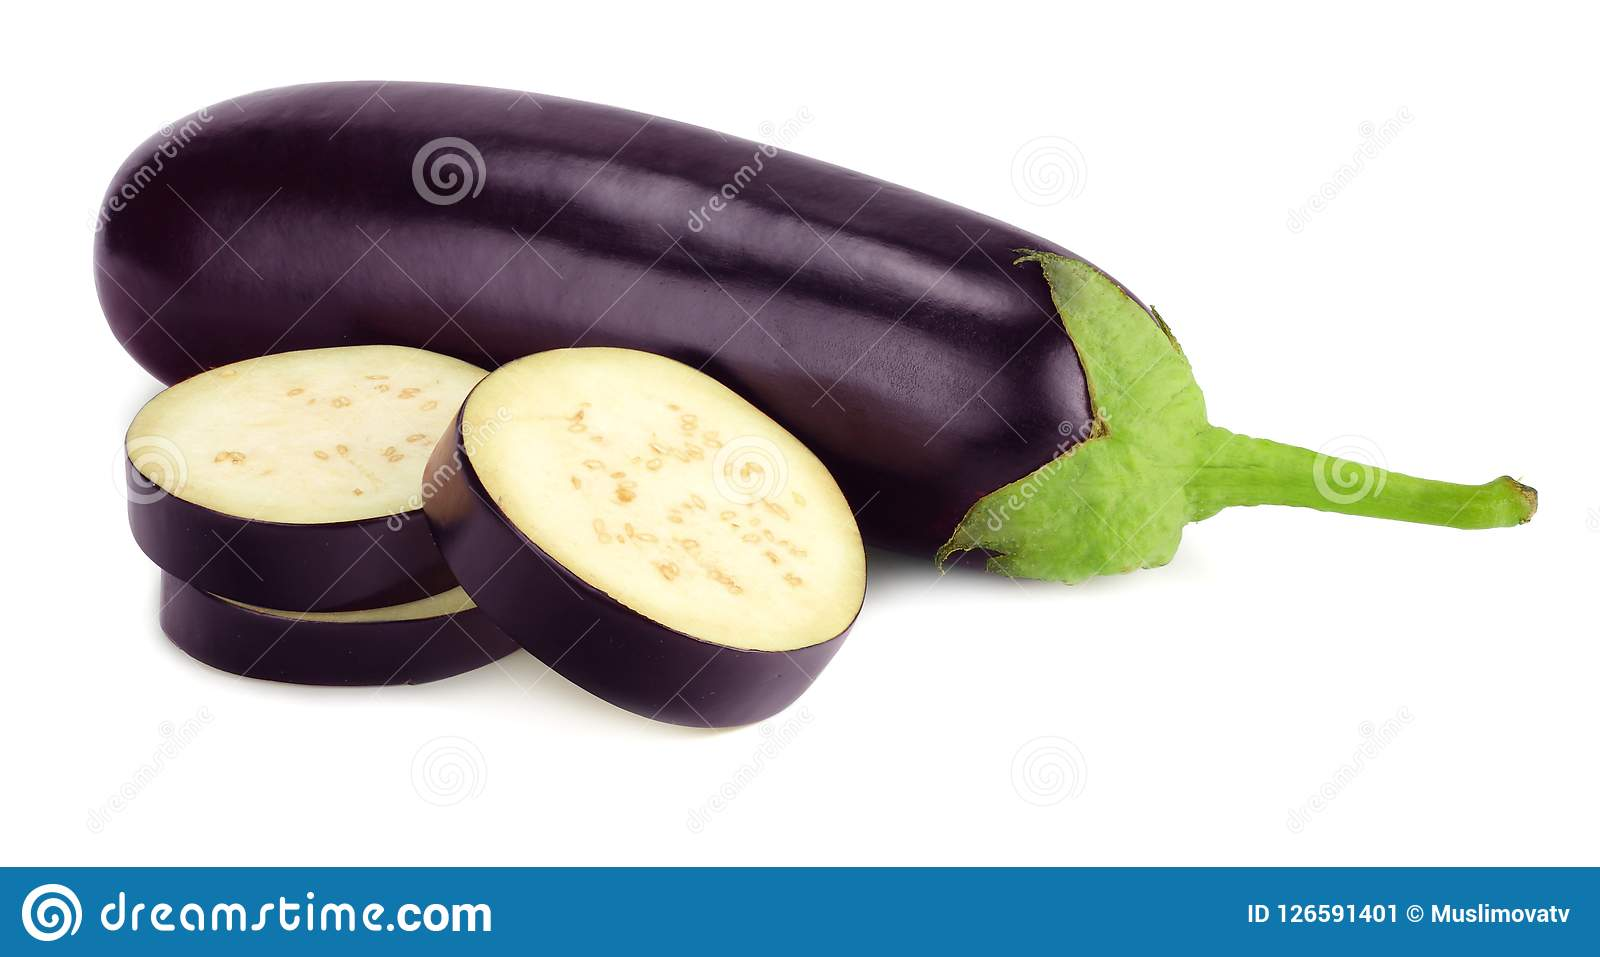 eggplant with slices isolated on white background. healthy food